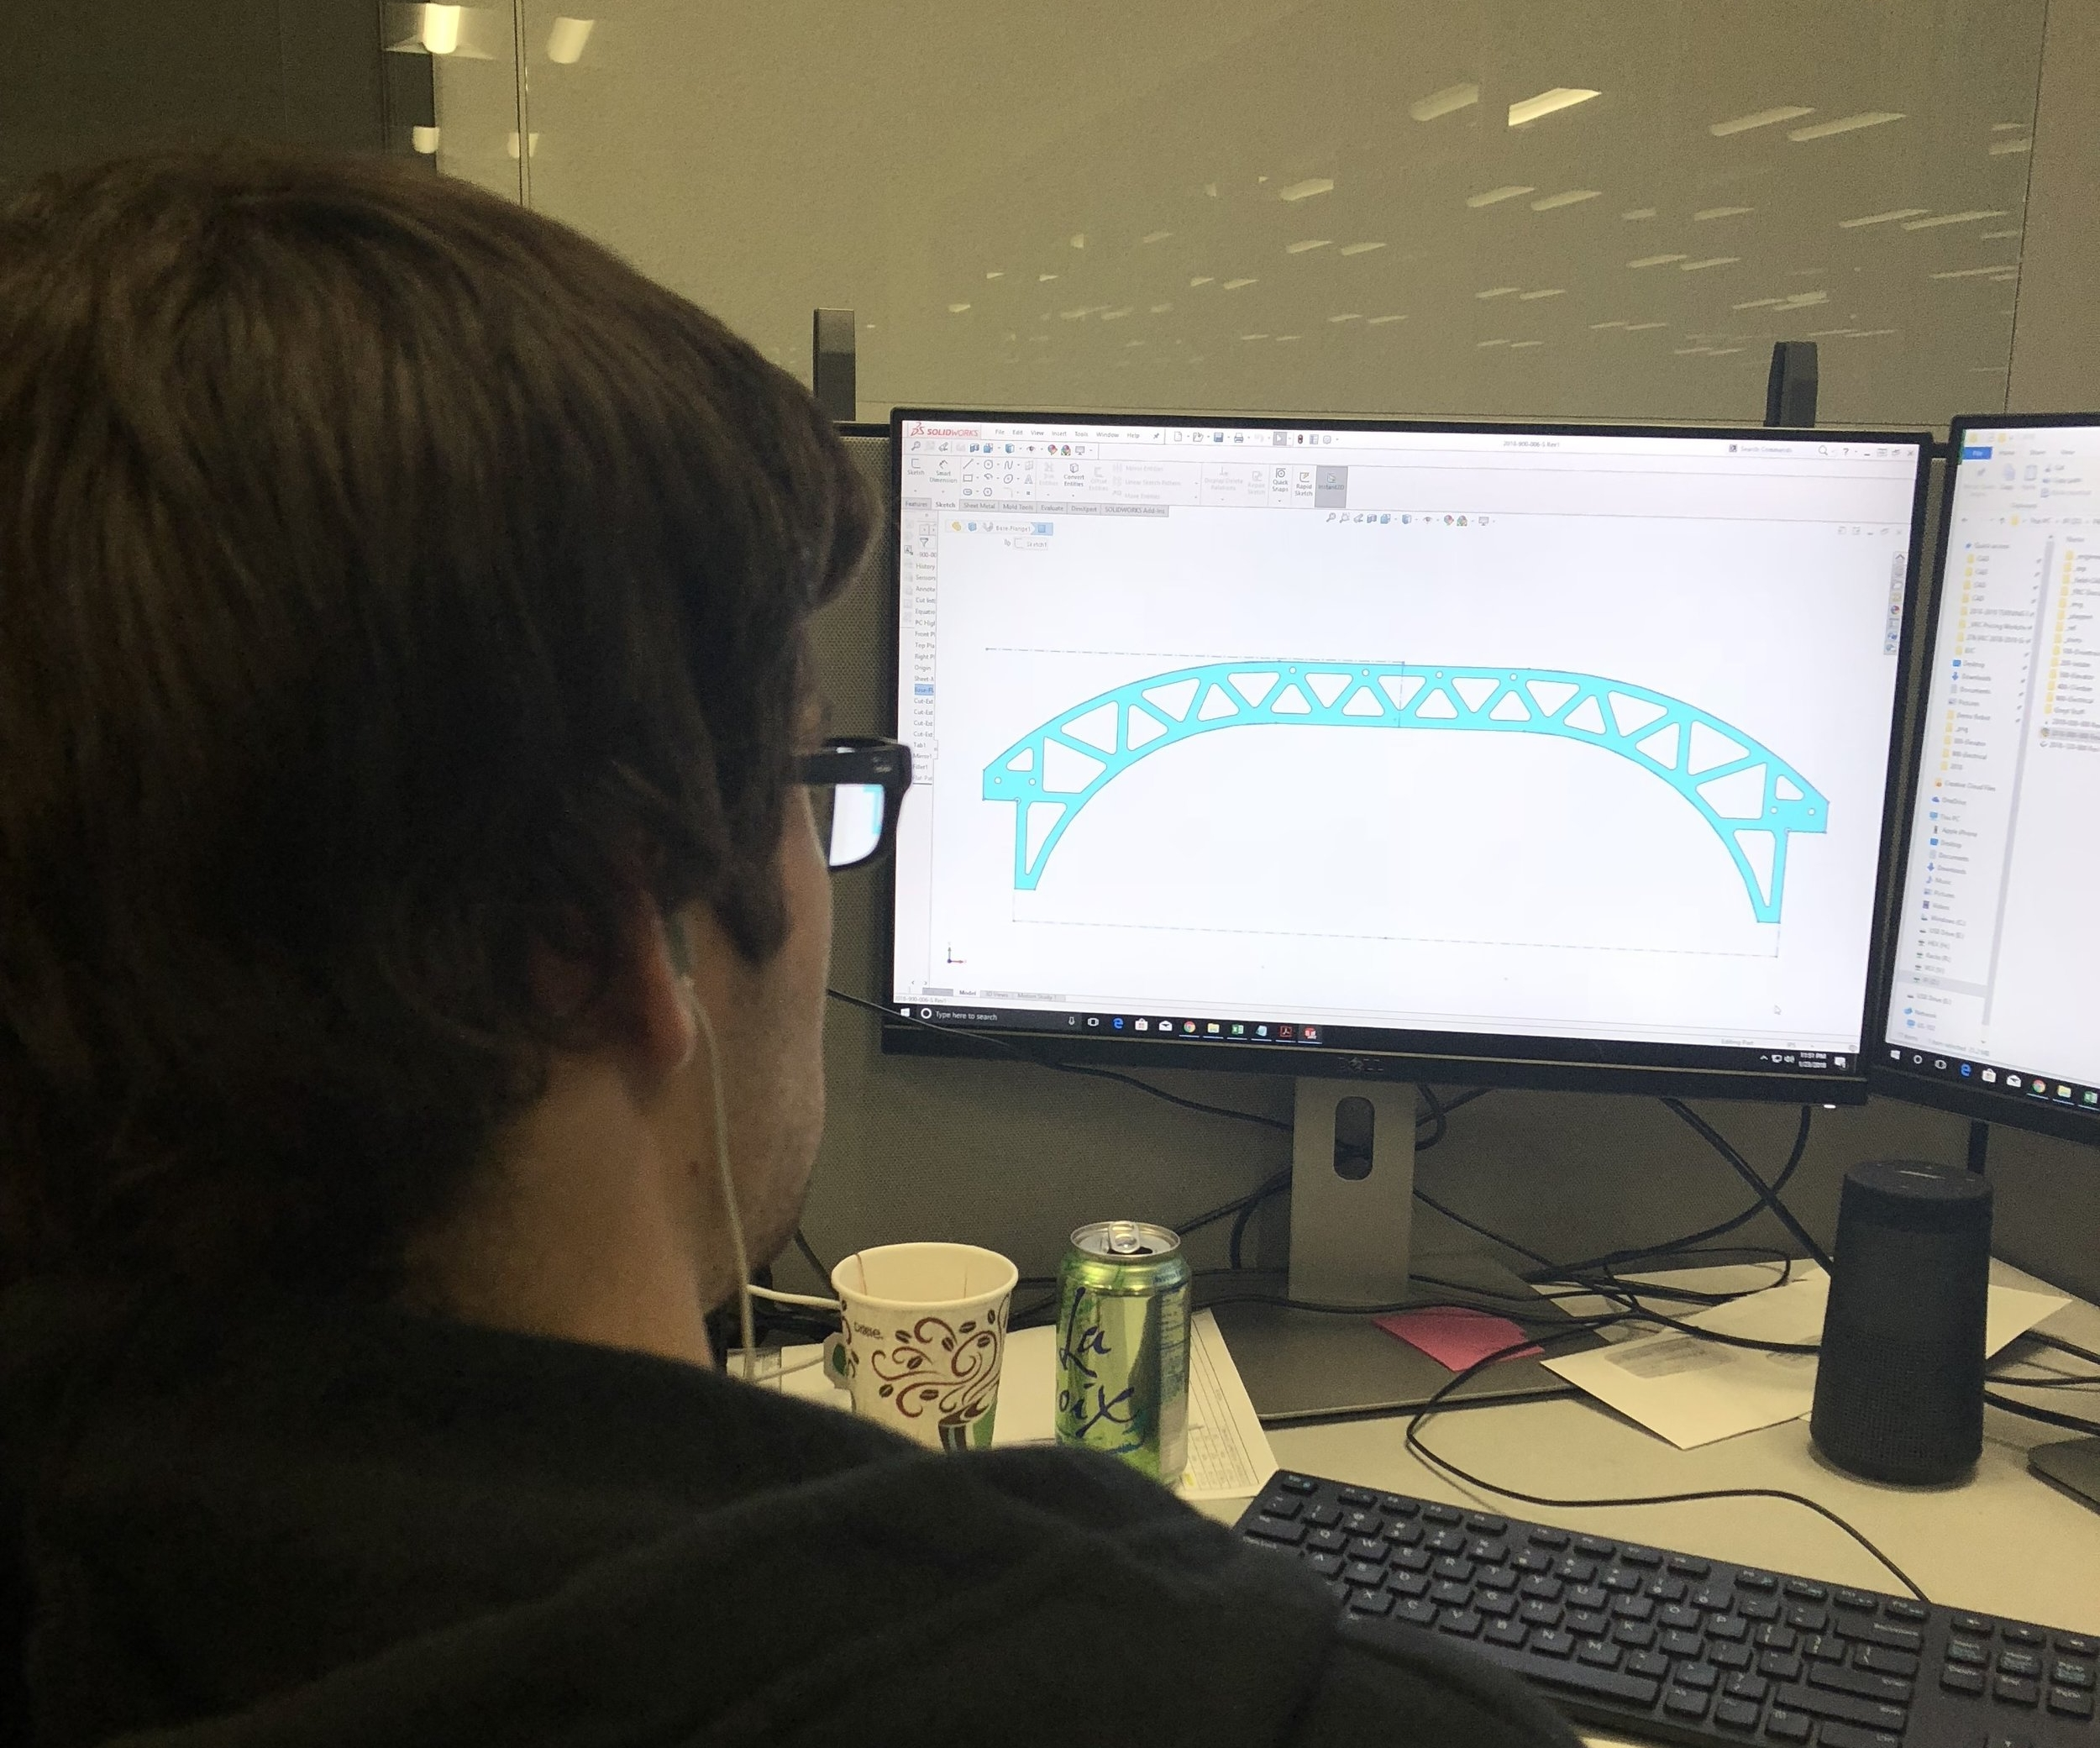 Bryan appears to be designing some sort of bridge on Robowrangler time. Get back to work,Bryan.